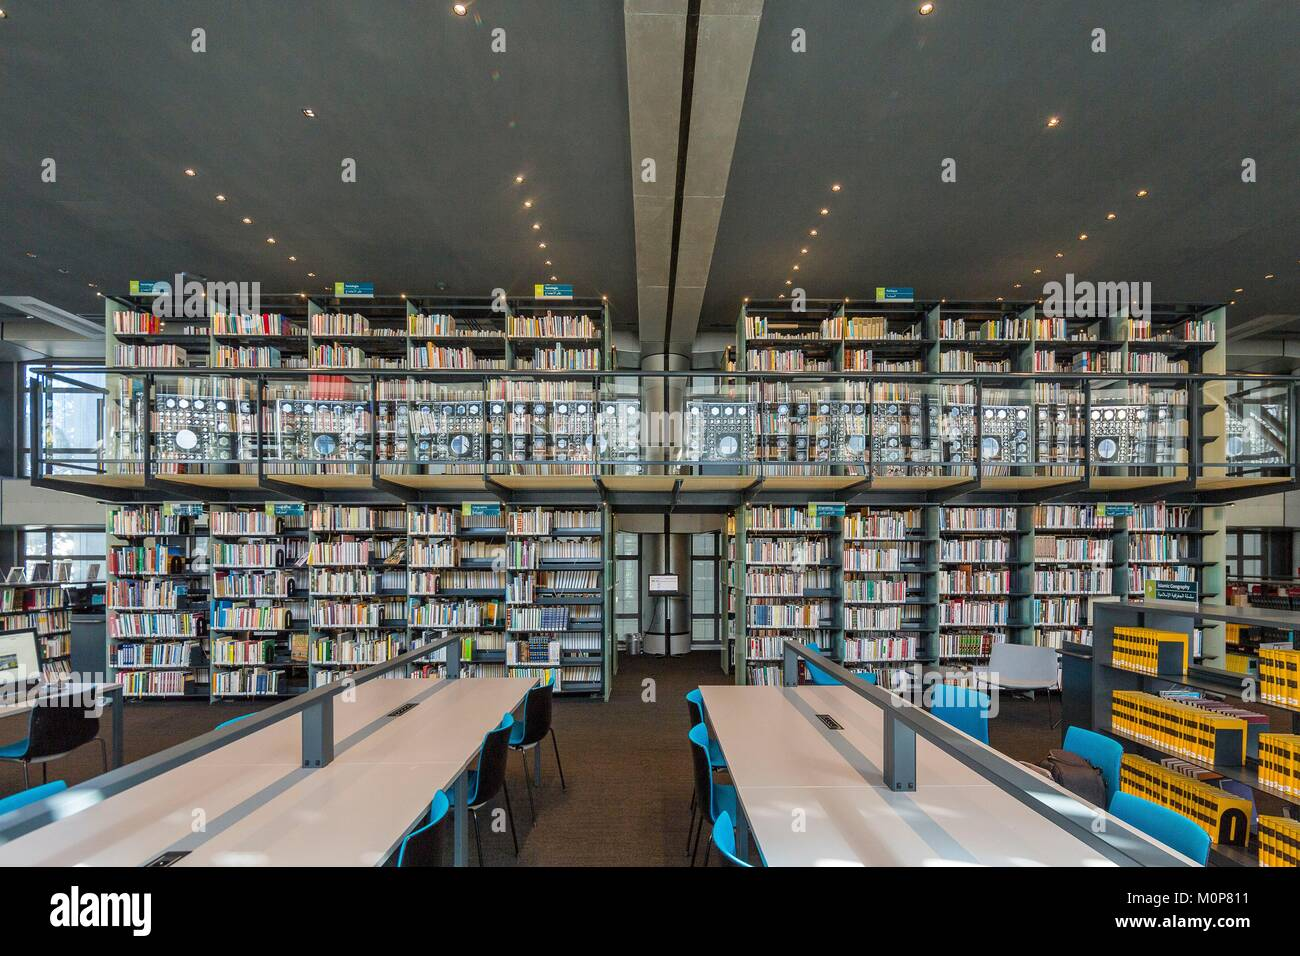 France,Paris,Institut du Monde Arabe (IMA),designed by the architects Jean Nouvel and Architecture-Studio,the library - Stock Image